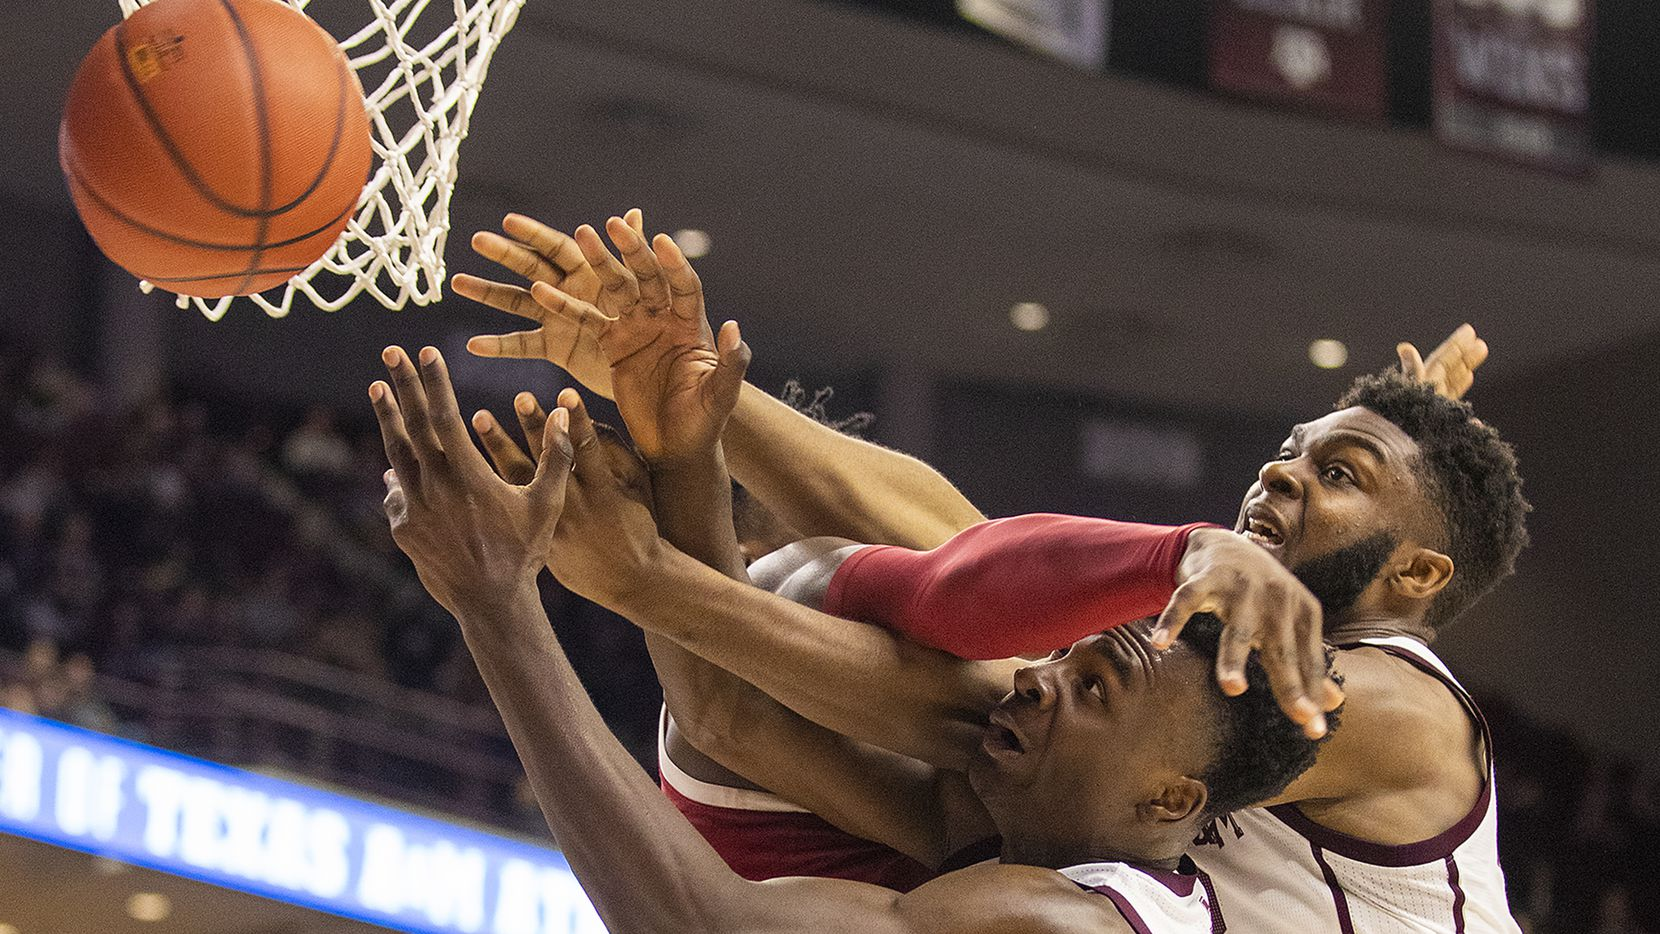 Texas A&M's Emanuel Miller (5) and Josh Nebo (32) vie for a rebound against Arkansas' Adrio Bailey (2) during an NCAA college basketball game game at Reed Arena in College Station, Texas, Saturday, March 7, 2020.